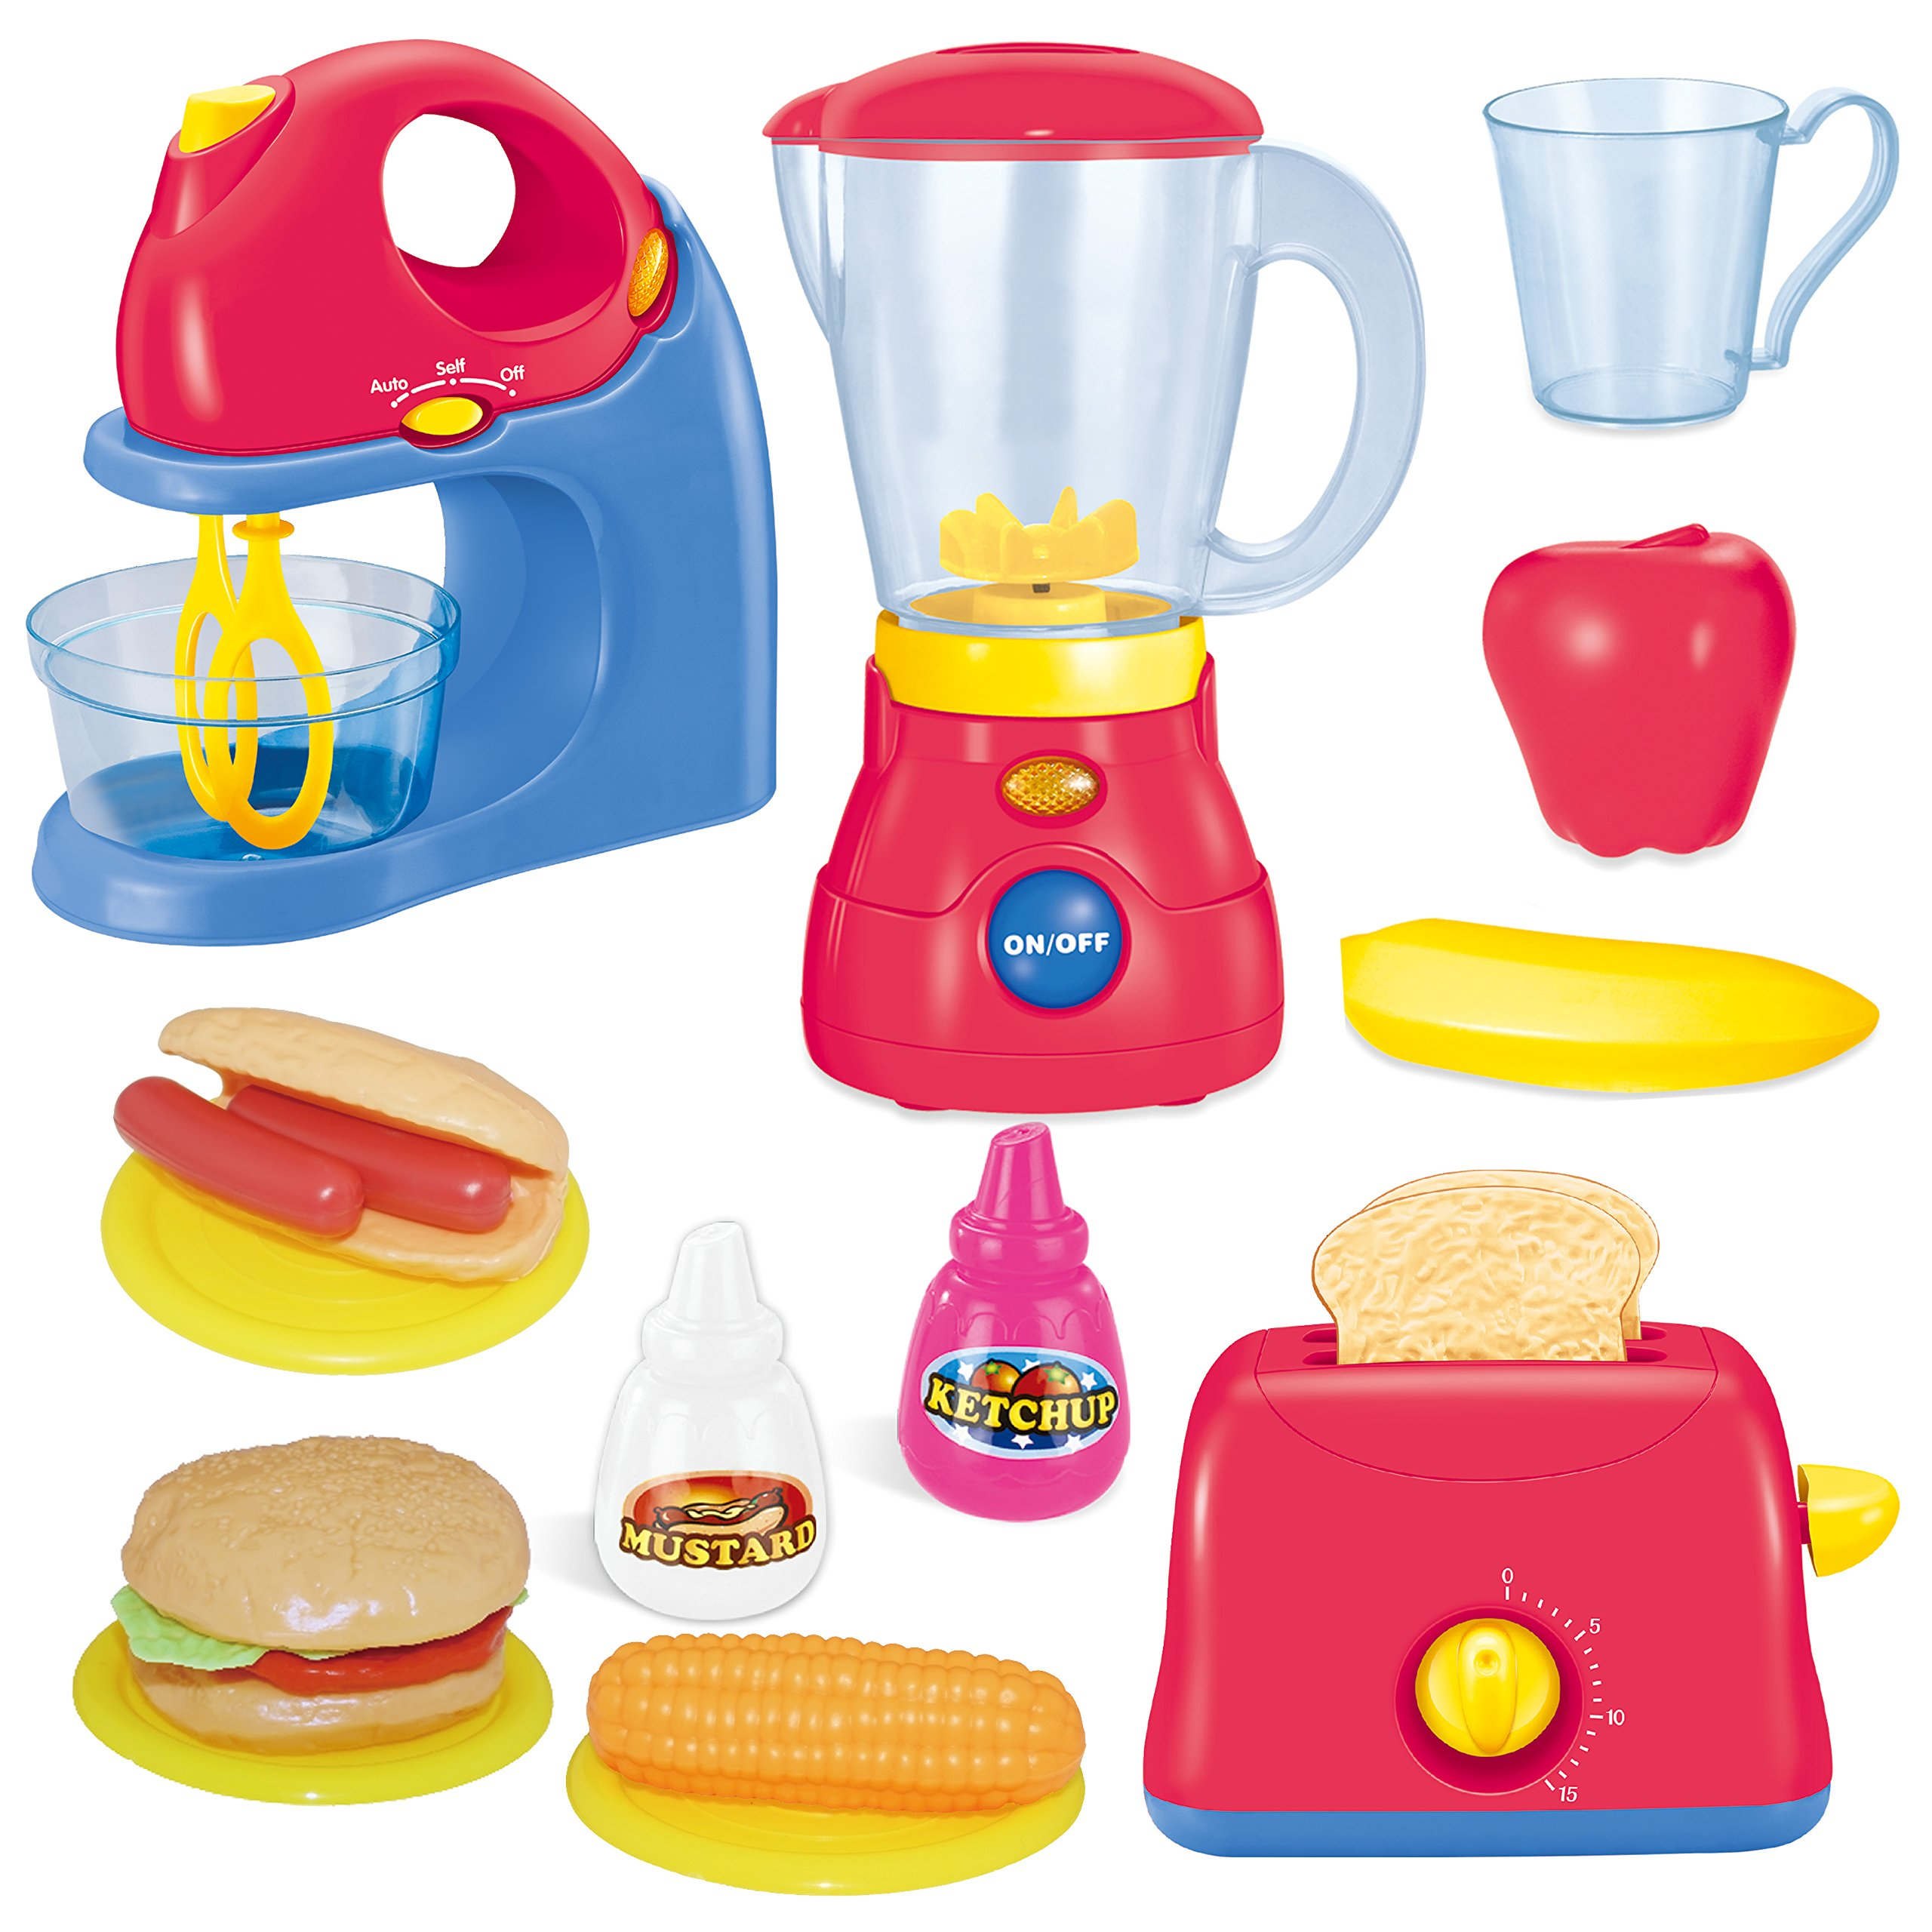 JOYIN Assorted Kitchen Appliance Toys with Mixer, Blender and Toaster Play Kitchen Accessories by JOYIN